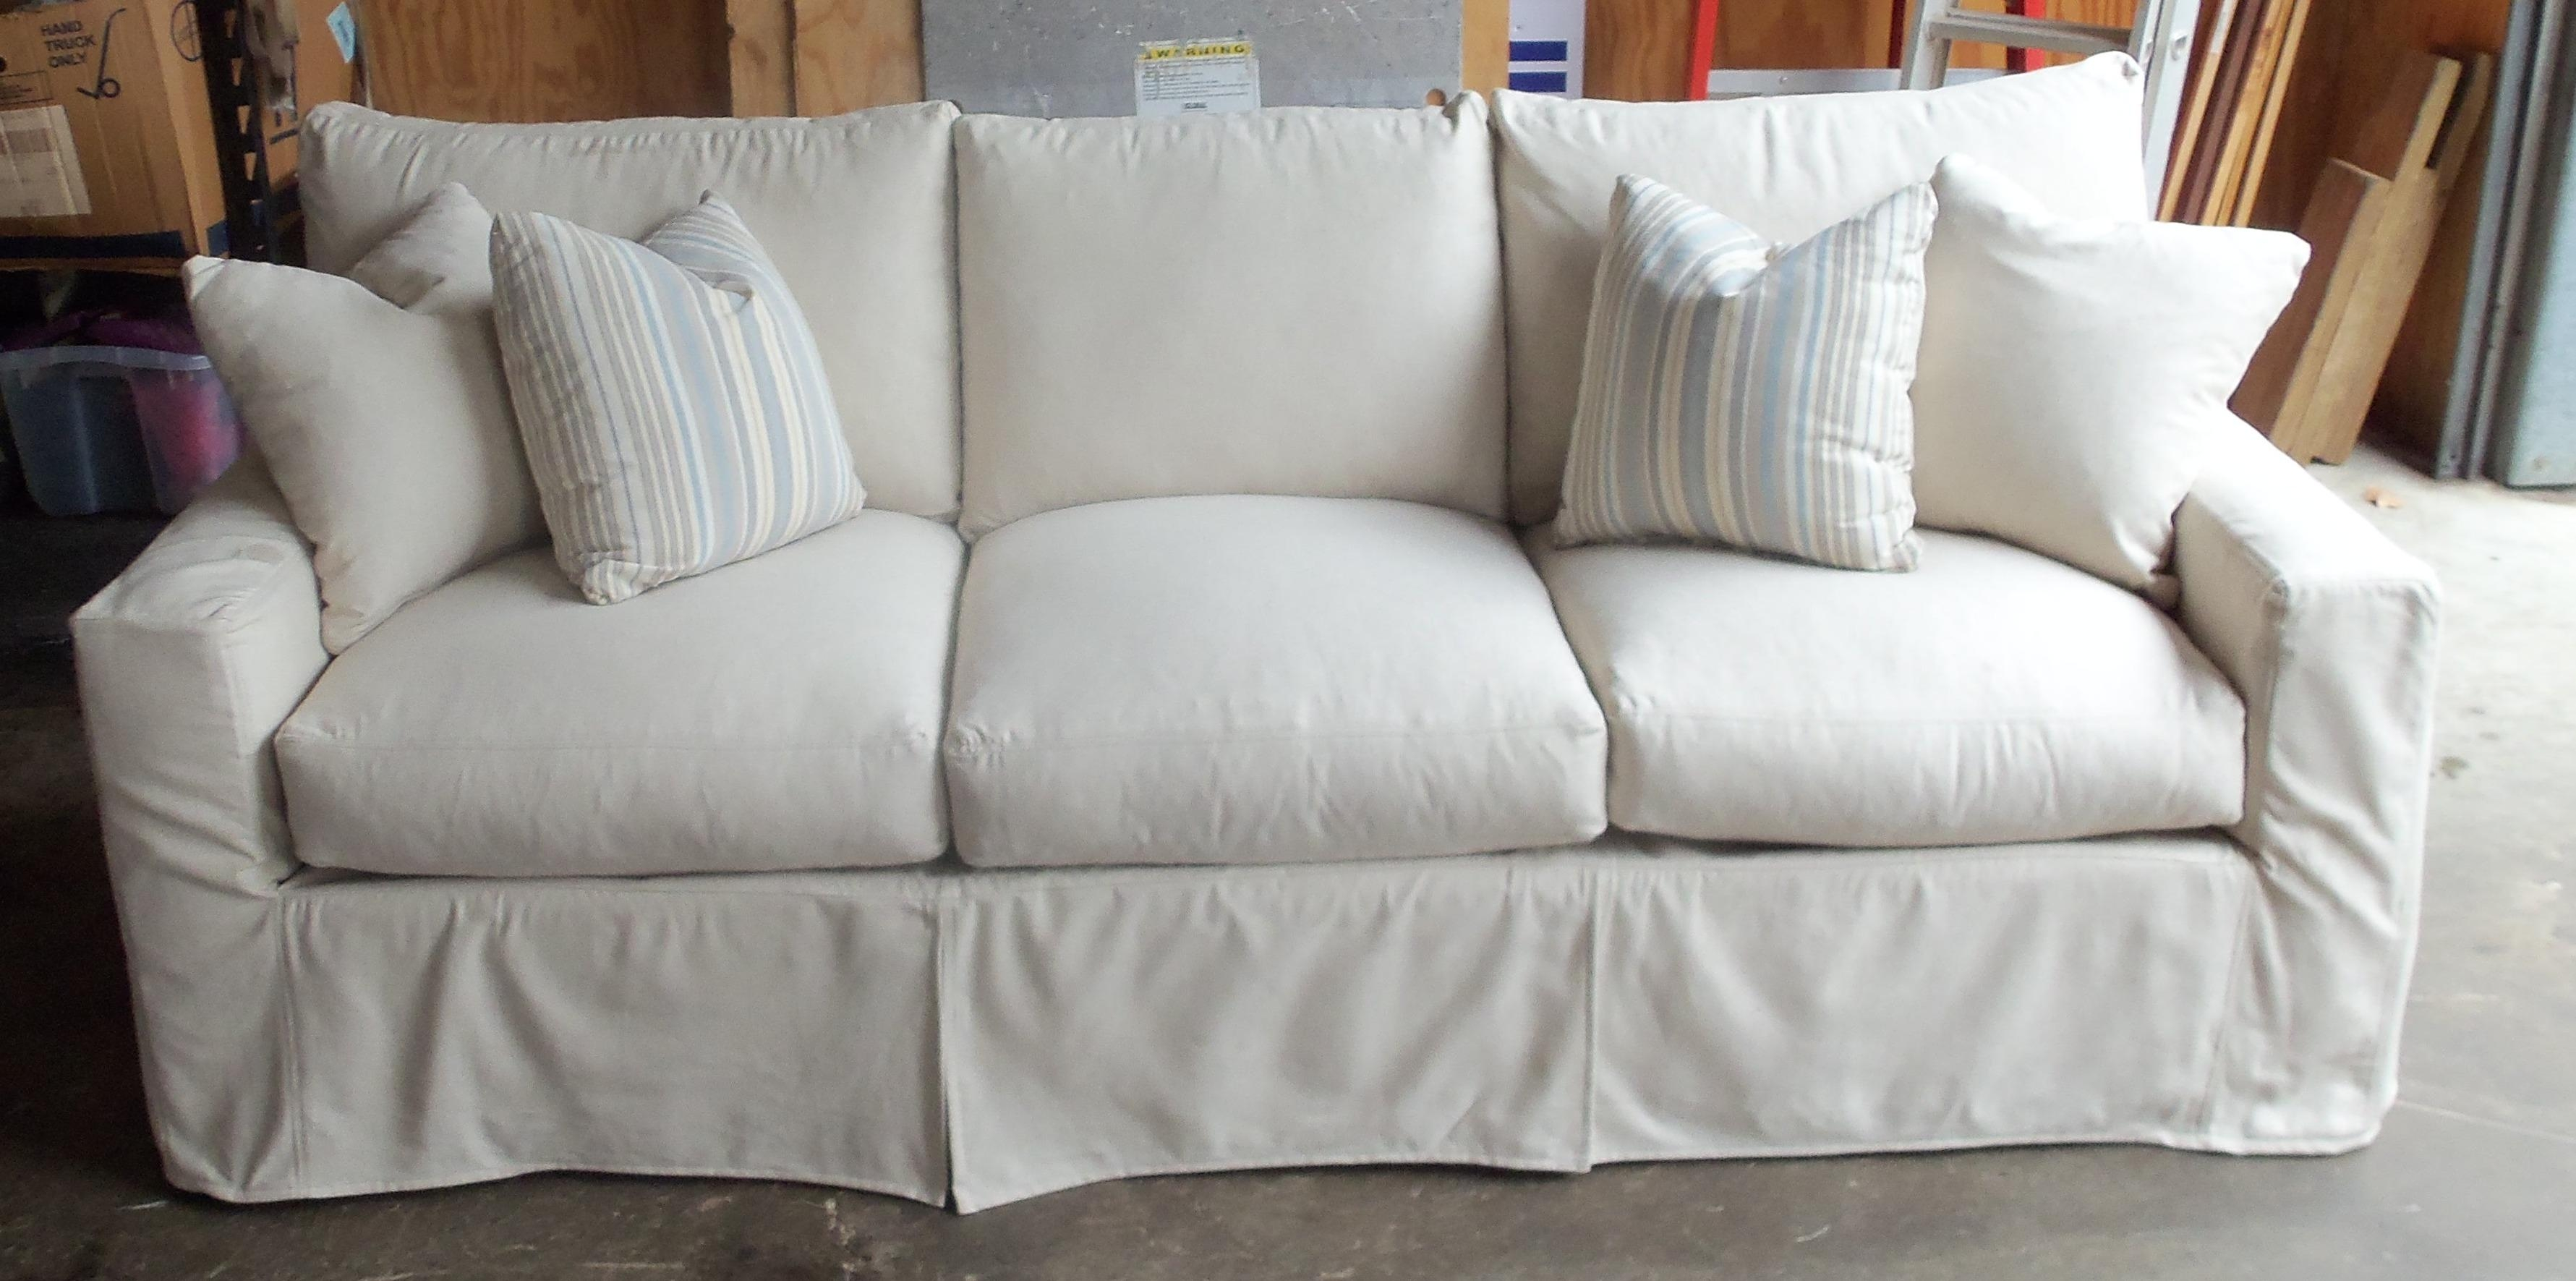 Furniture: Classy Ikea Couch Covers Design For Stylish Living Room Within Slipcovers For Sofas And Chairs (Image 11 of 20)